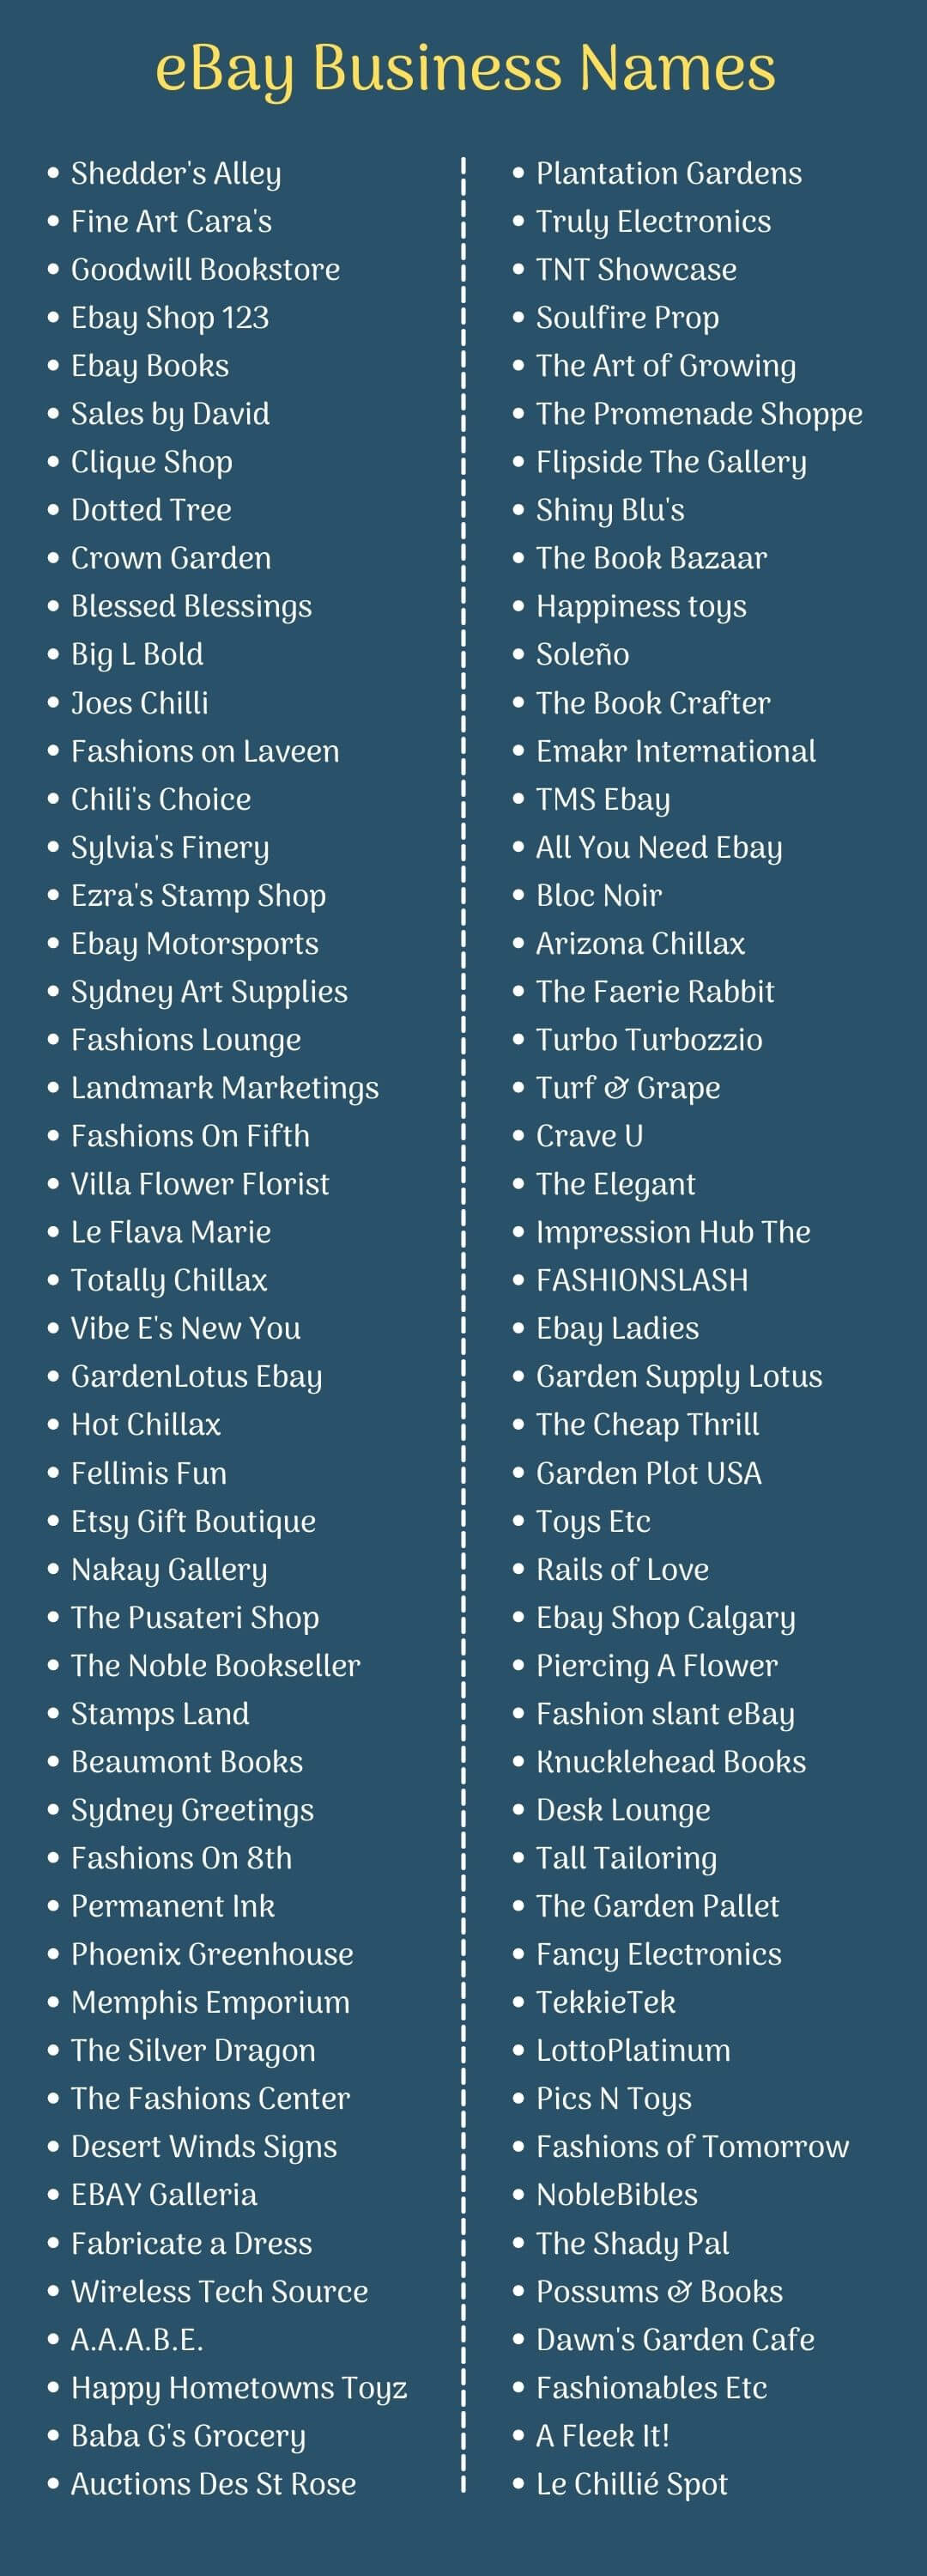 eBay Business Names: Infographic